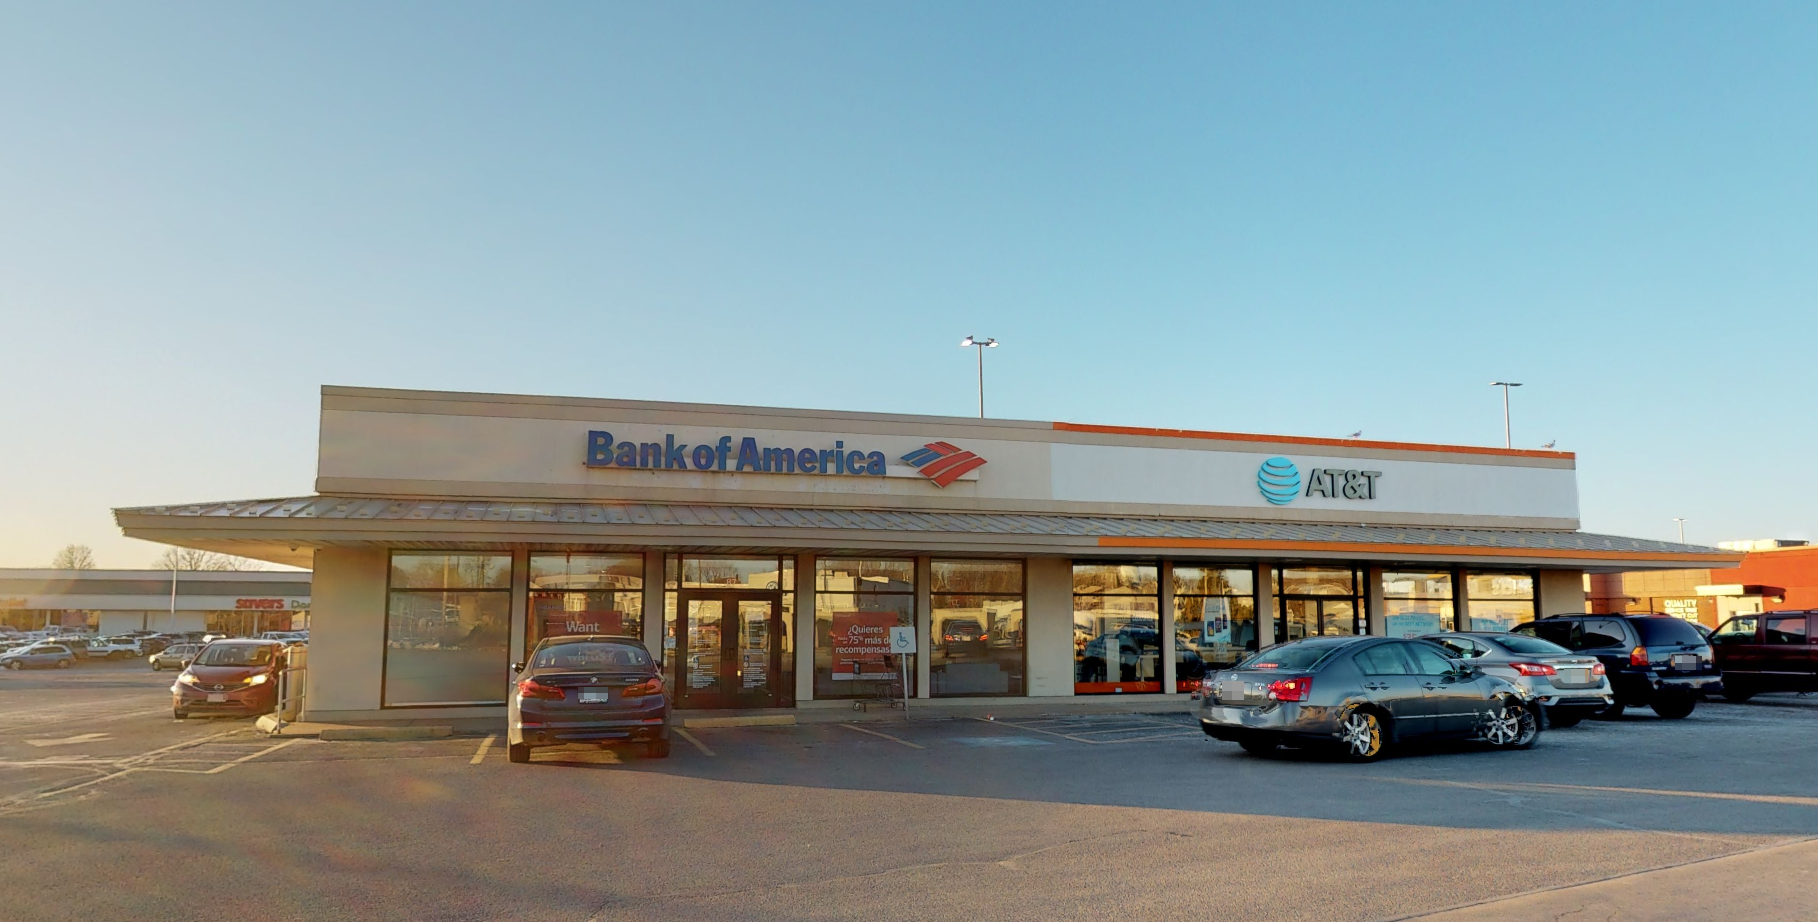 Bank of America financial center with drive-thru ATM | 87 Mariano Bishop Blvd, Fall River, MA 02721